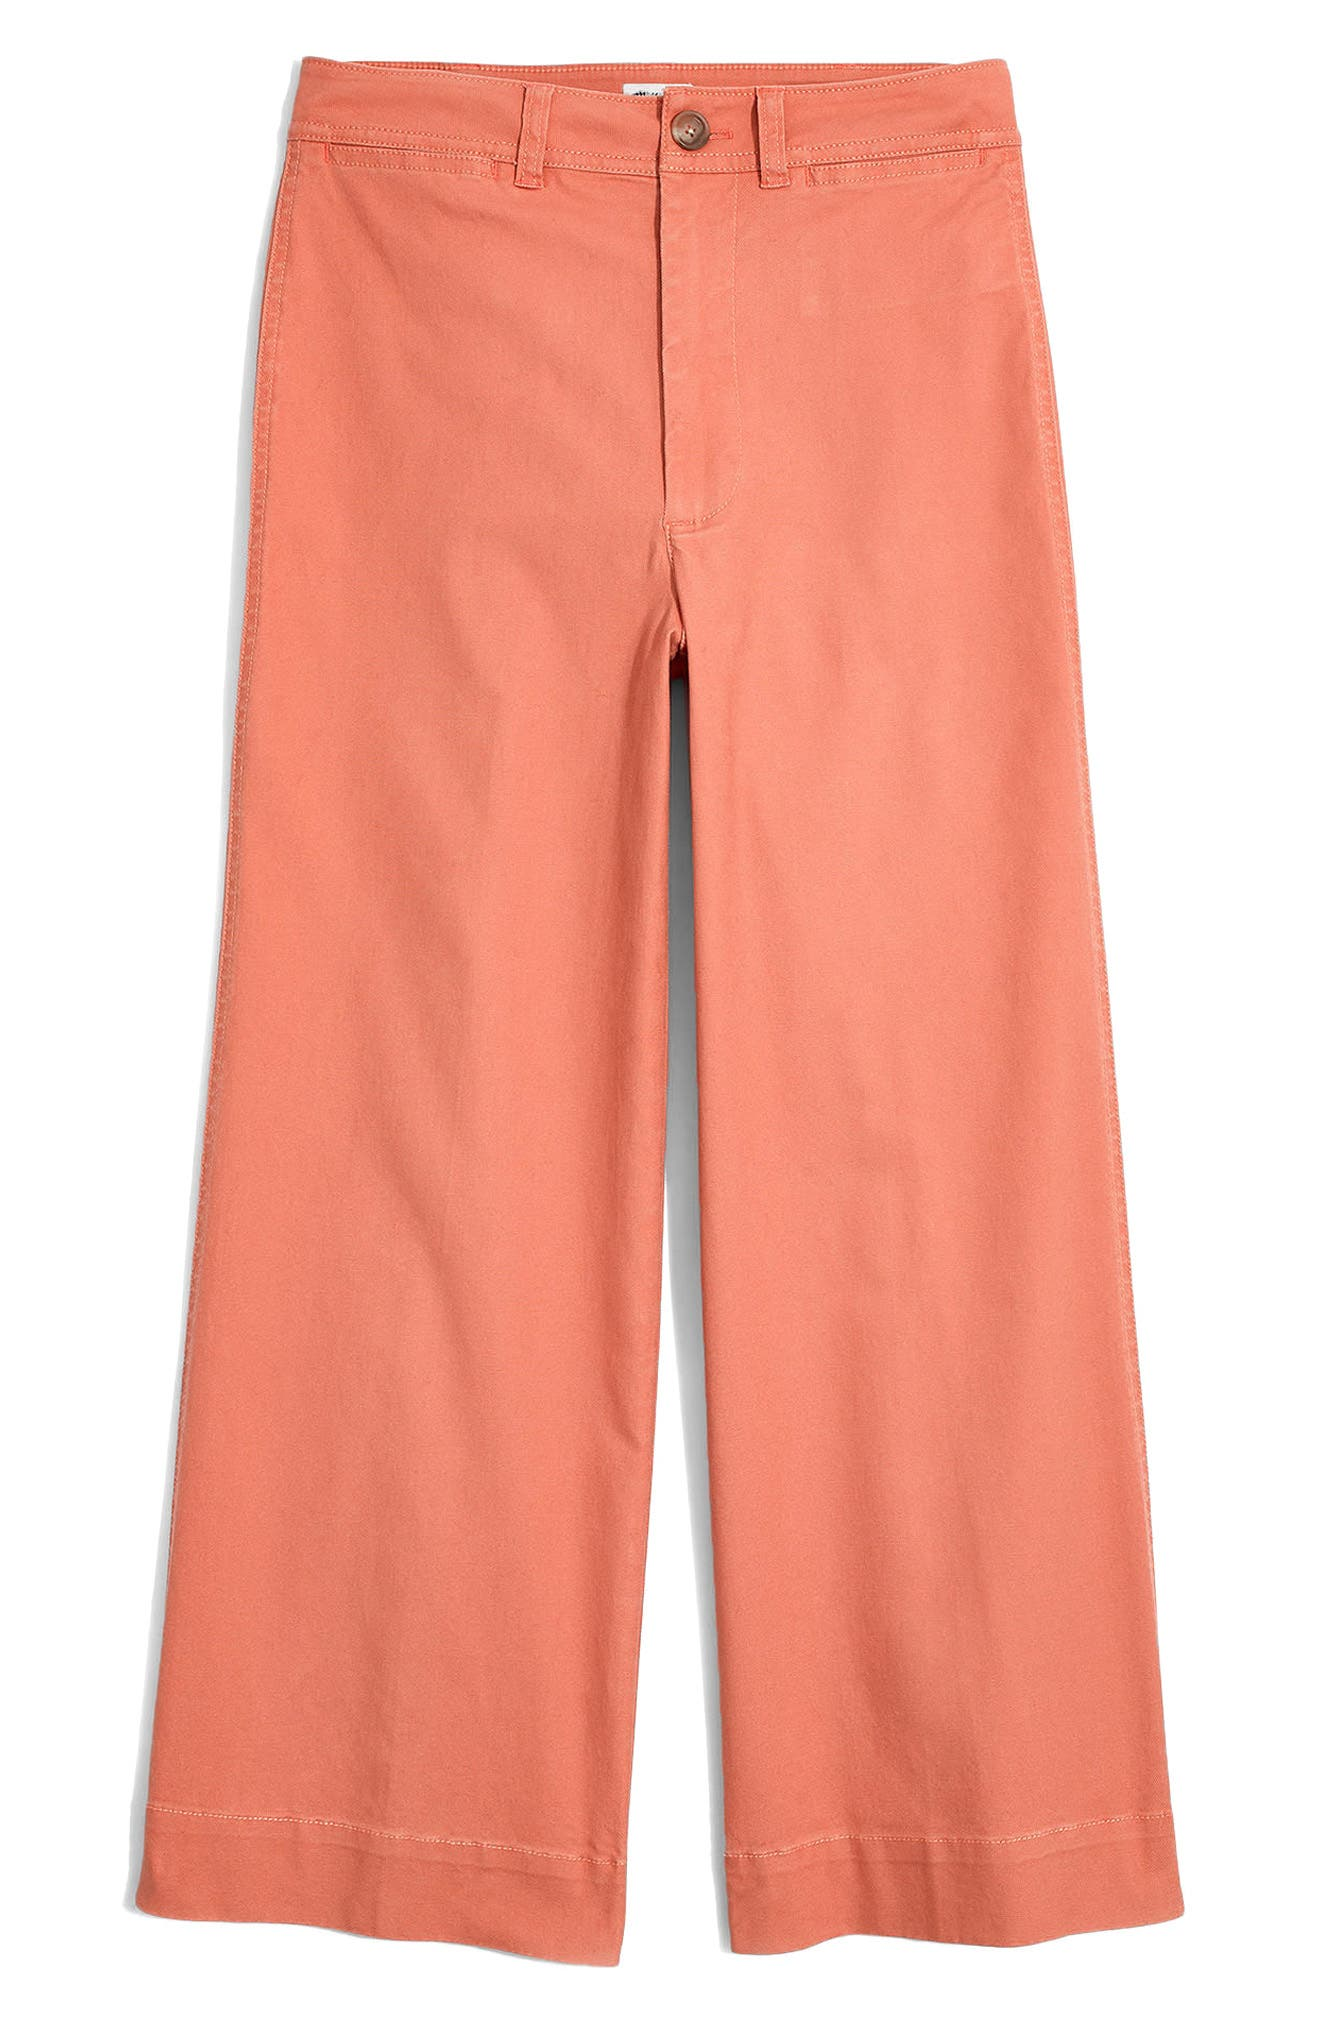 Emmett Crop Wide Leg Pants,                             Alternate thumbnail 7, color,                             Dried Coral